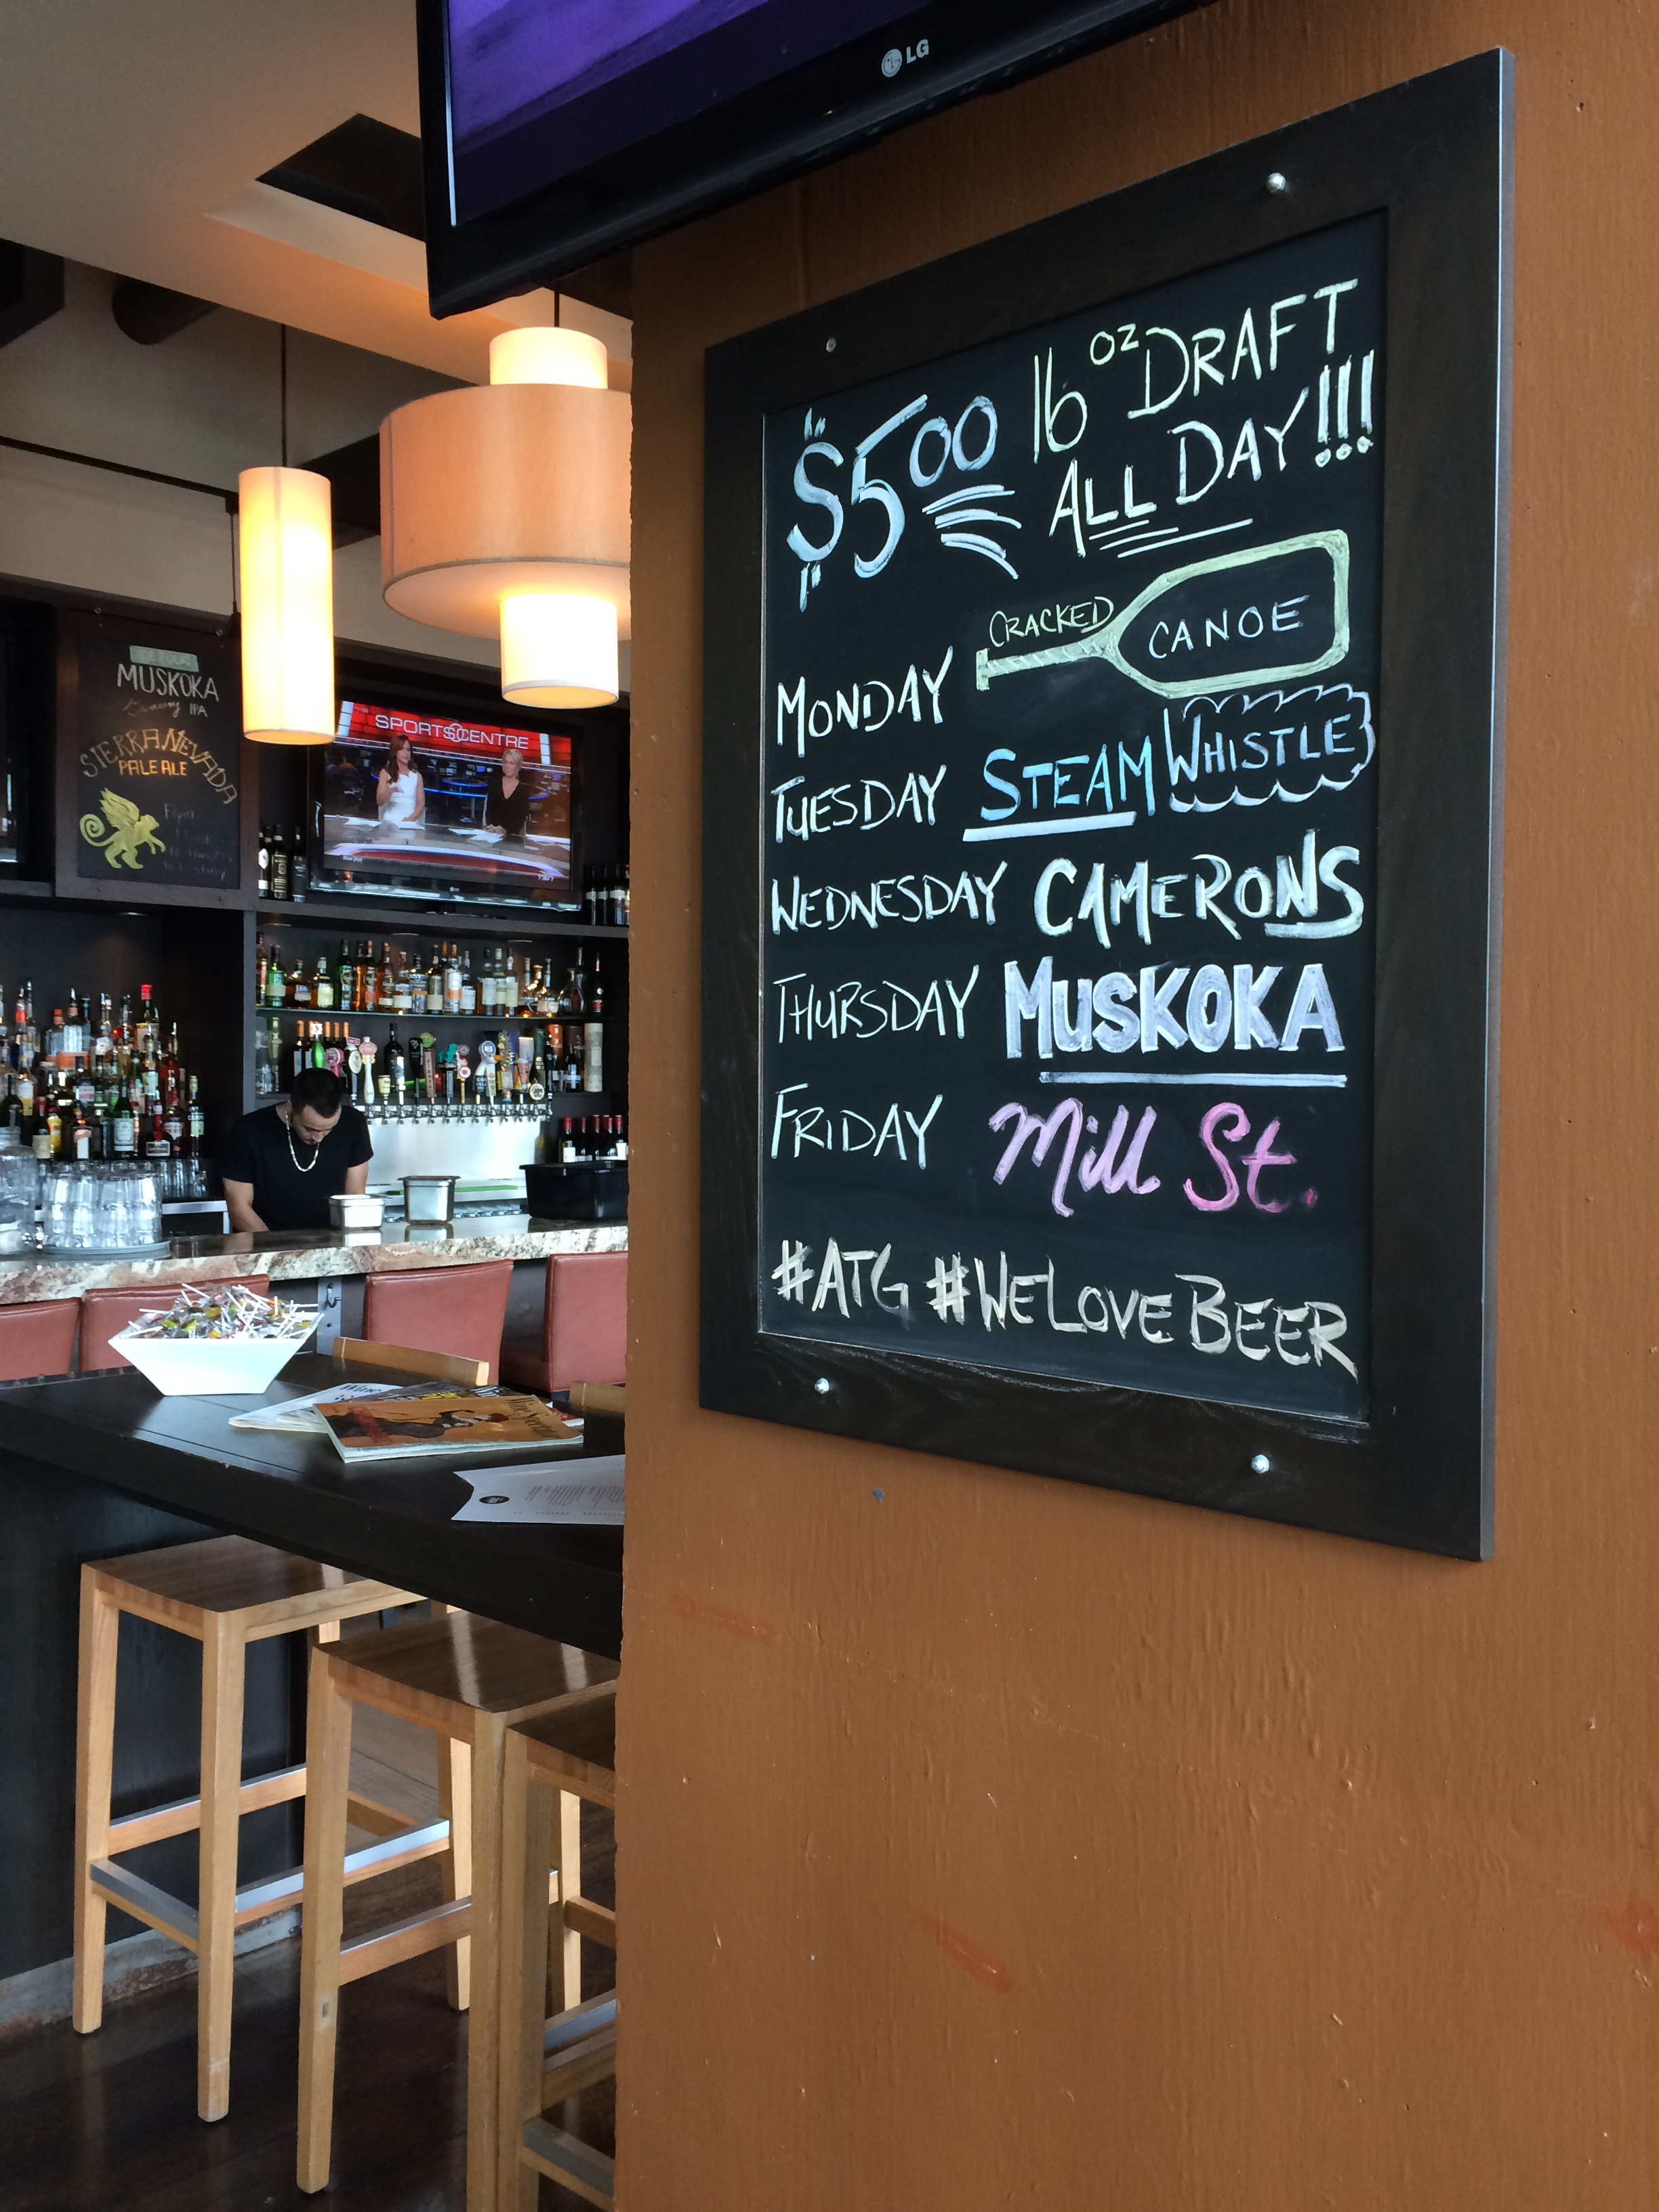 Image of the beer specials.